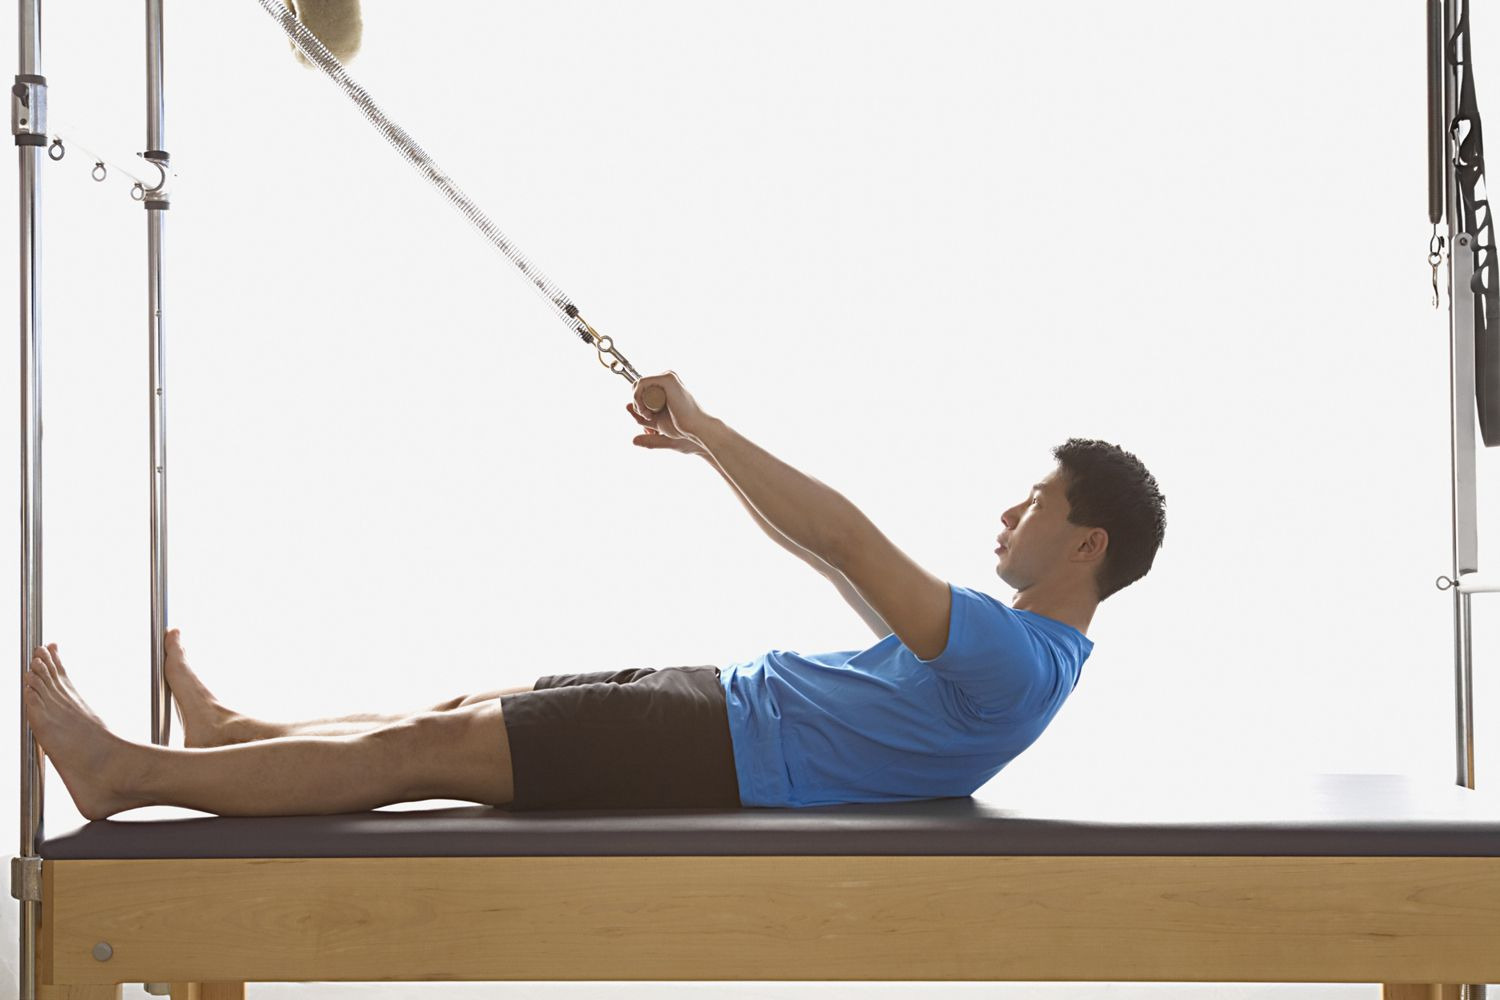 Why Pilates Is a Good Workout for Men